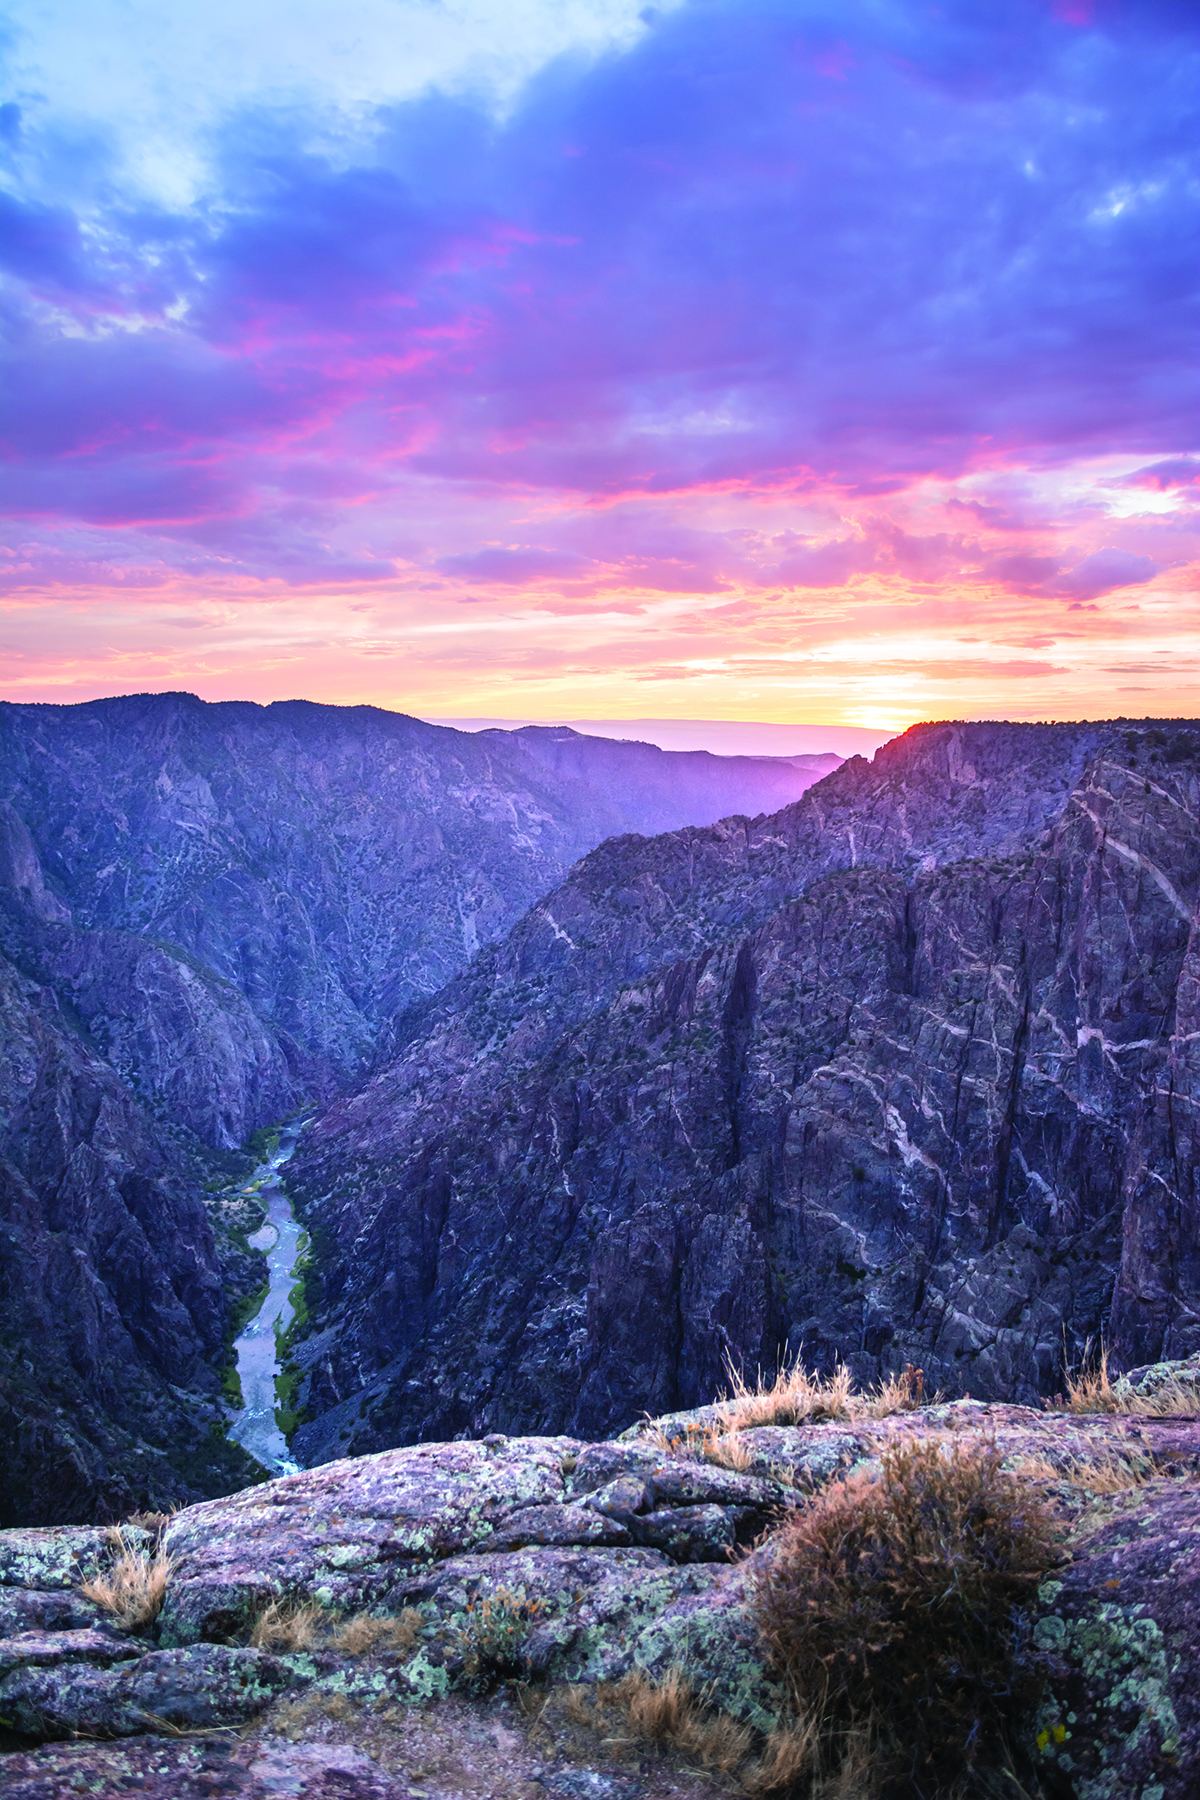 Black Canyon of the Gunnison. Photo: Neill Pieper